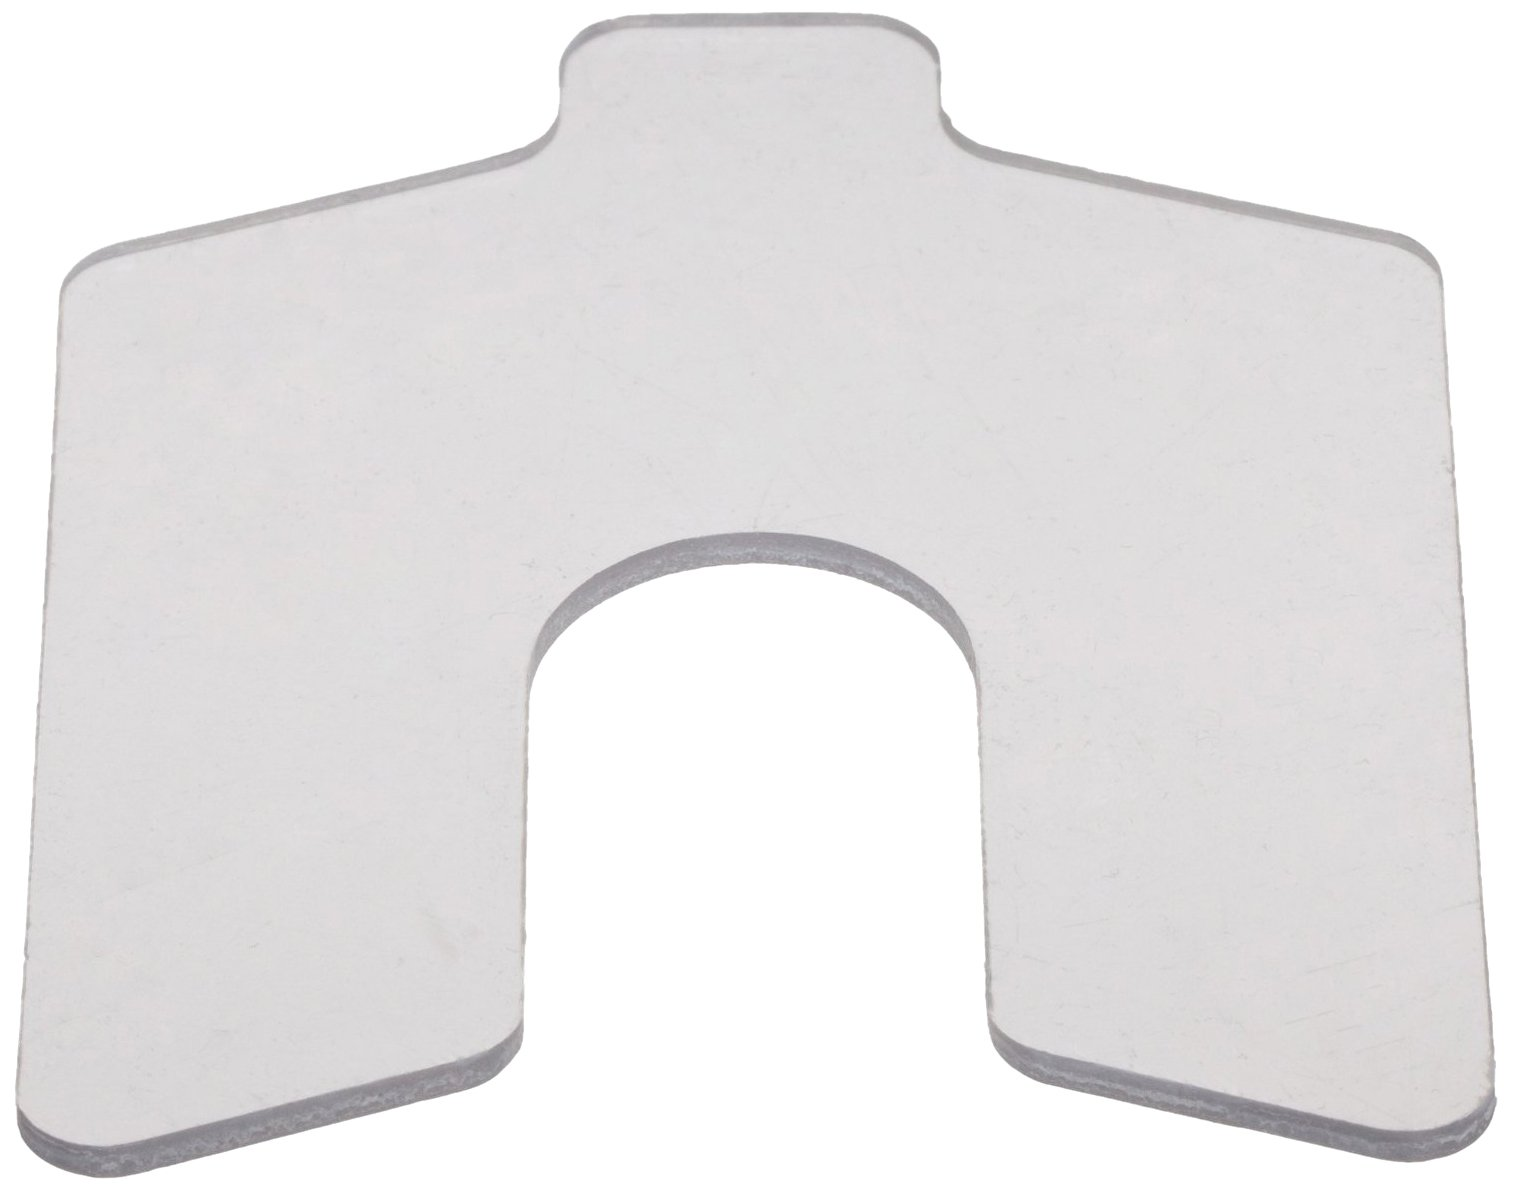 PVC (Polyvinyl Chloride) Slotted Shim,  Clear, 0.050'' Thickness, 1'' Width, 1'' Length, 0.3125'' Slot Width (Pack of 20) by Small Parts